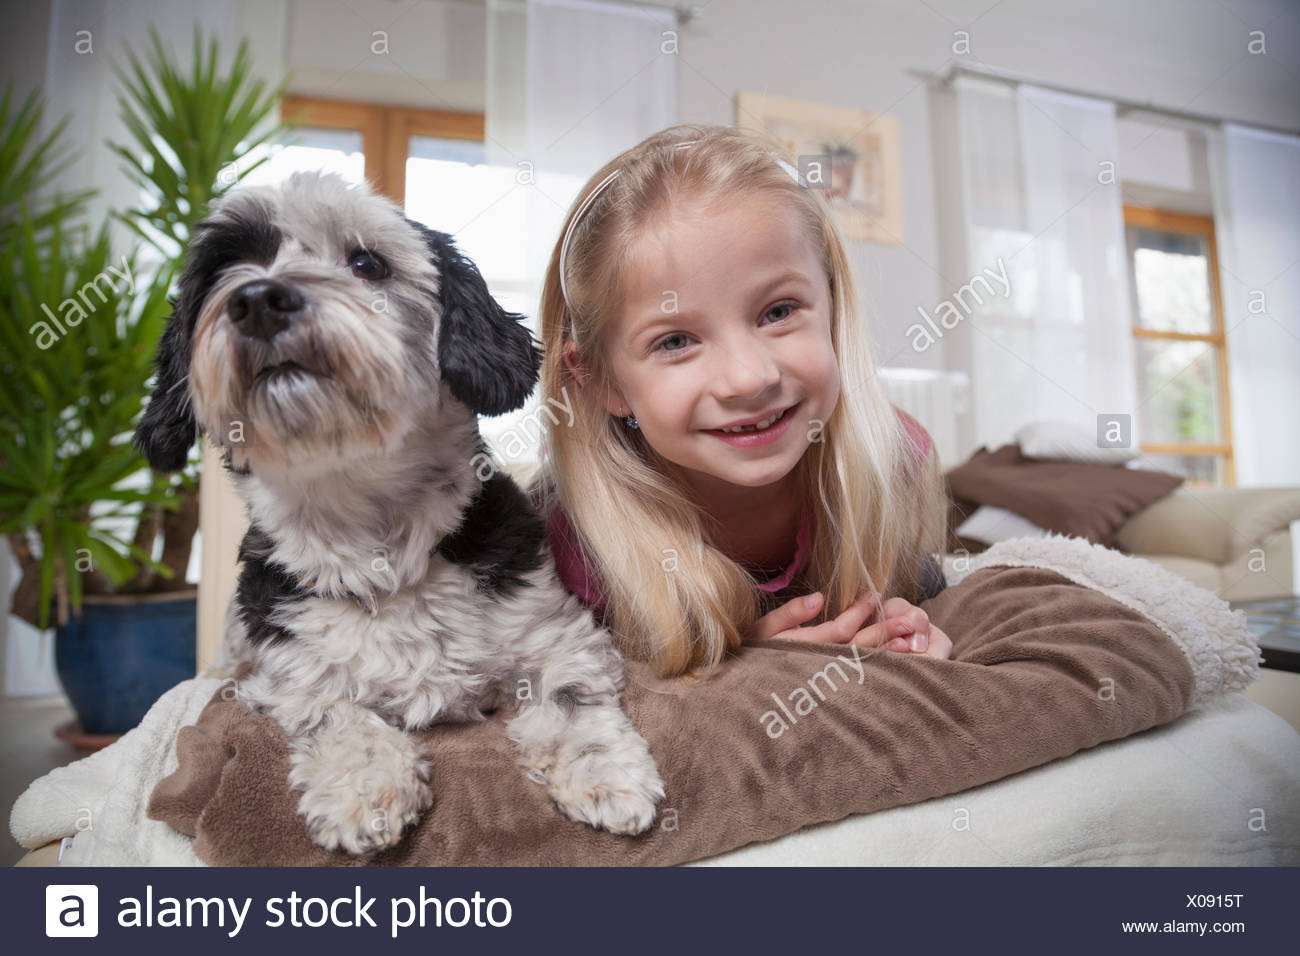 Girl with dog in a living room, Bavaria, Germany - Stock Image